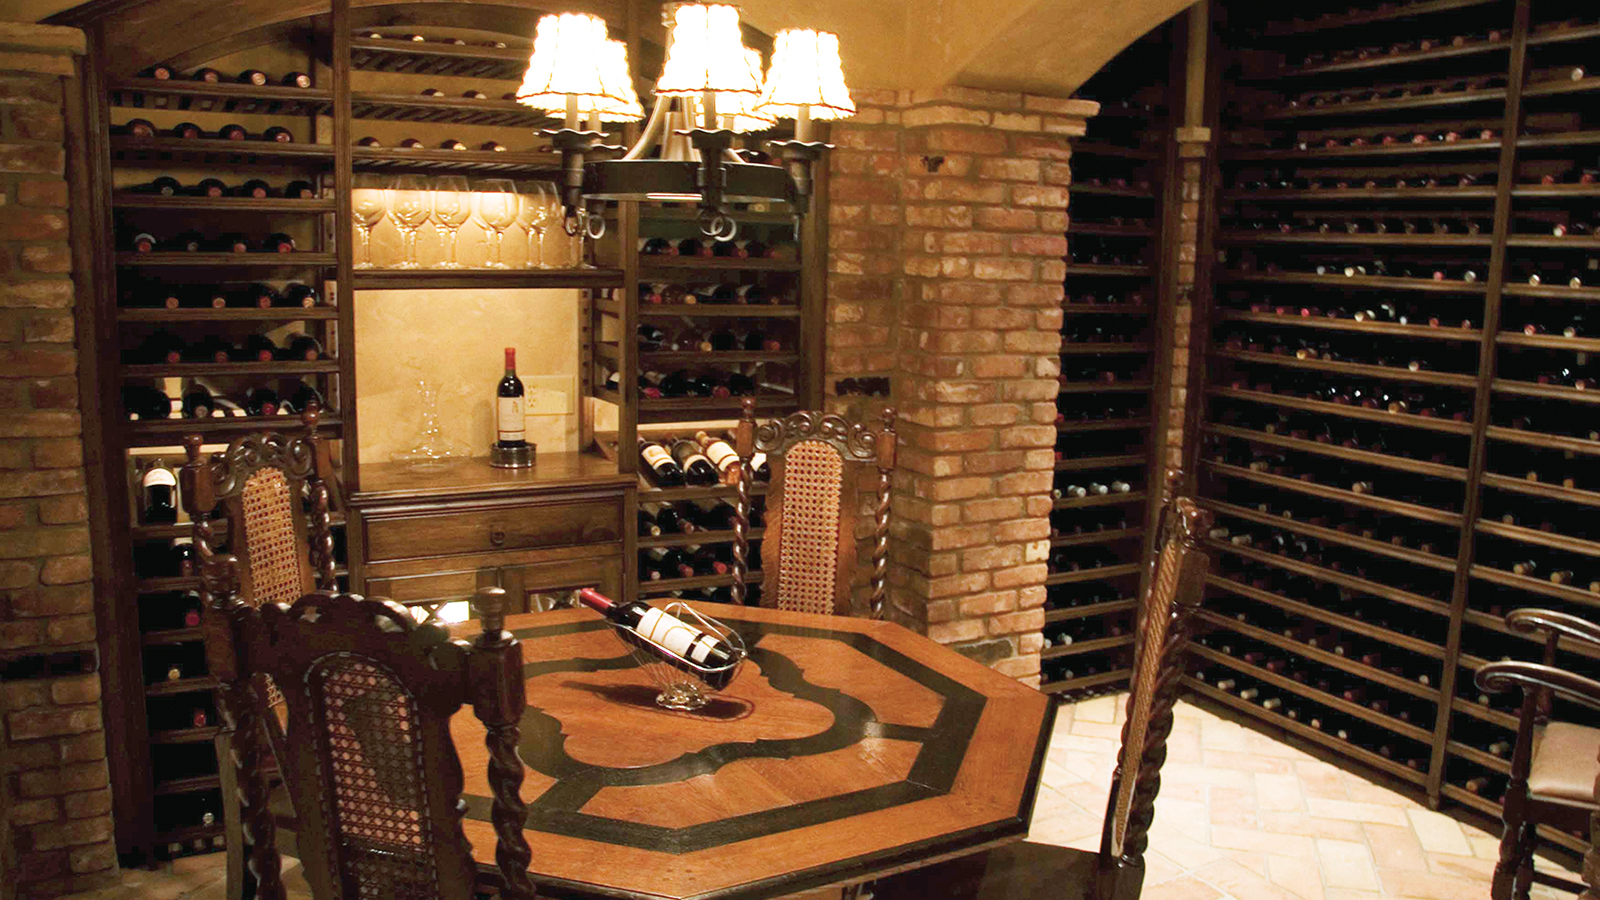 Weinregal Modern Expensive Wine Cellar Built In Basement | Private Cellars